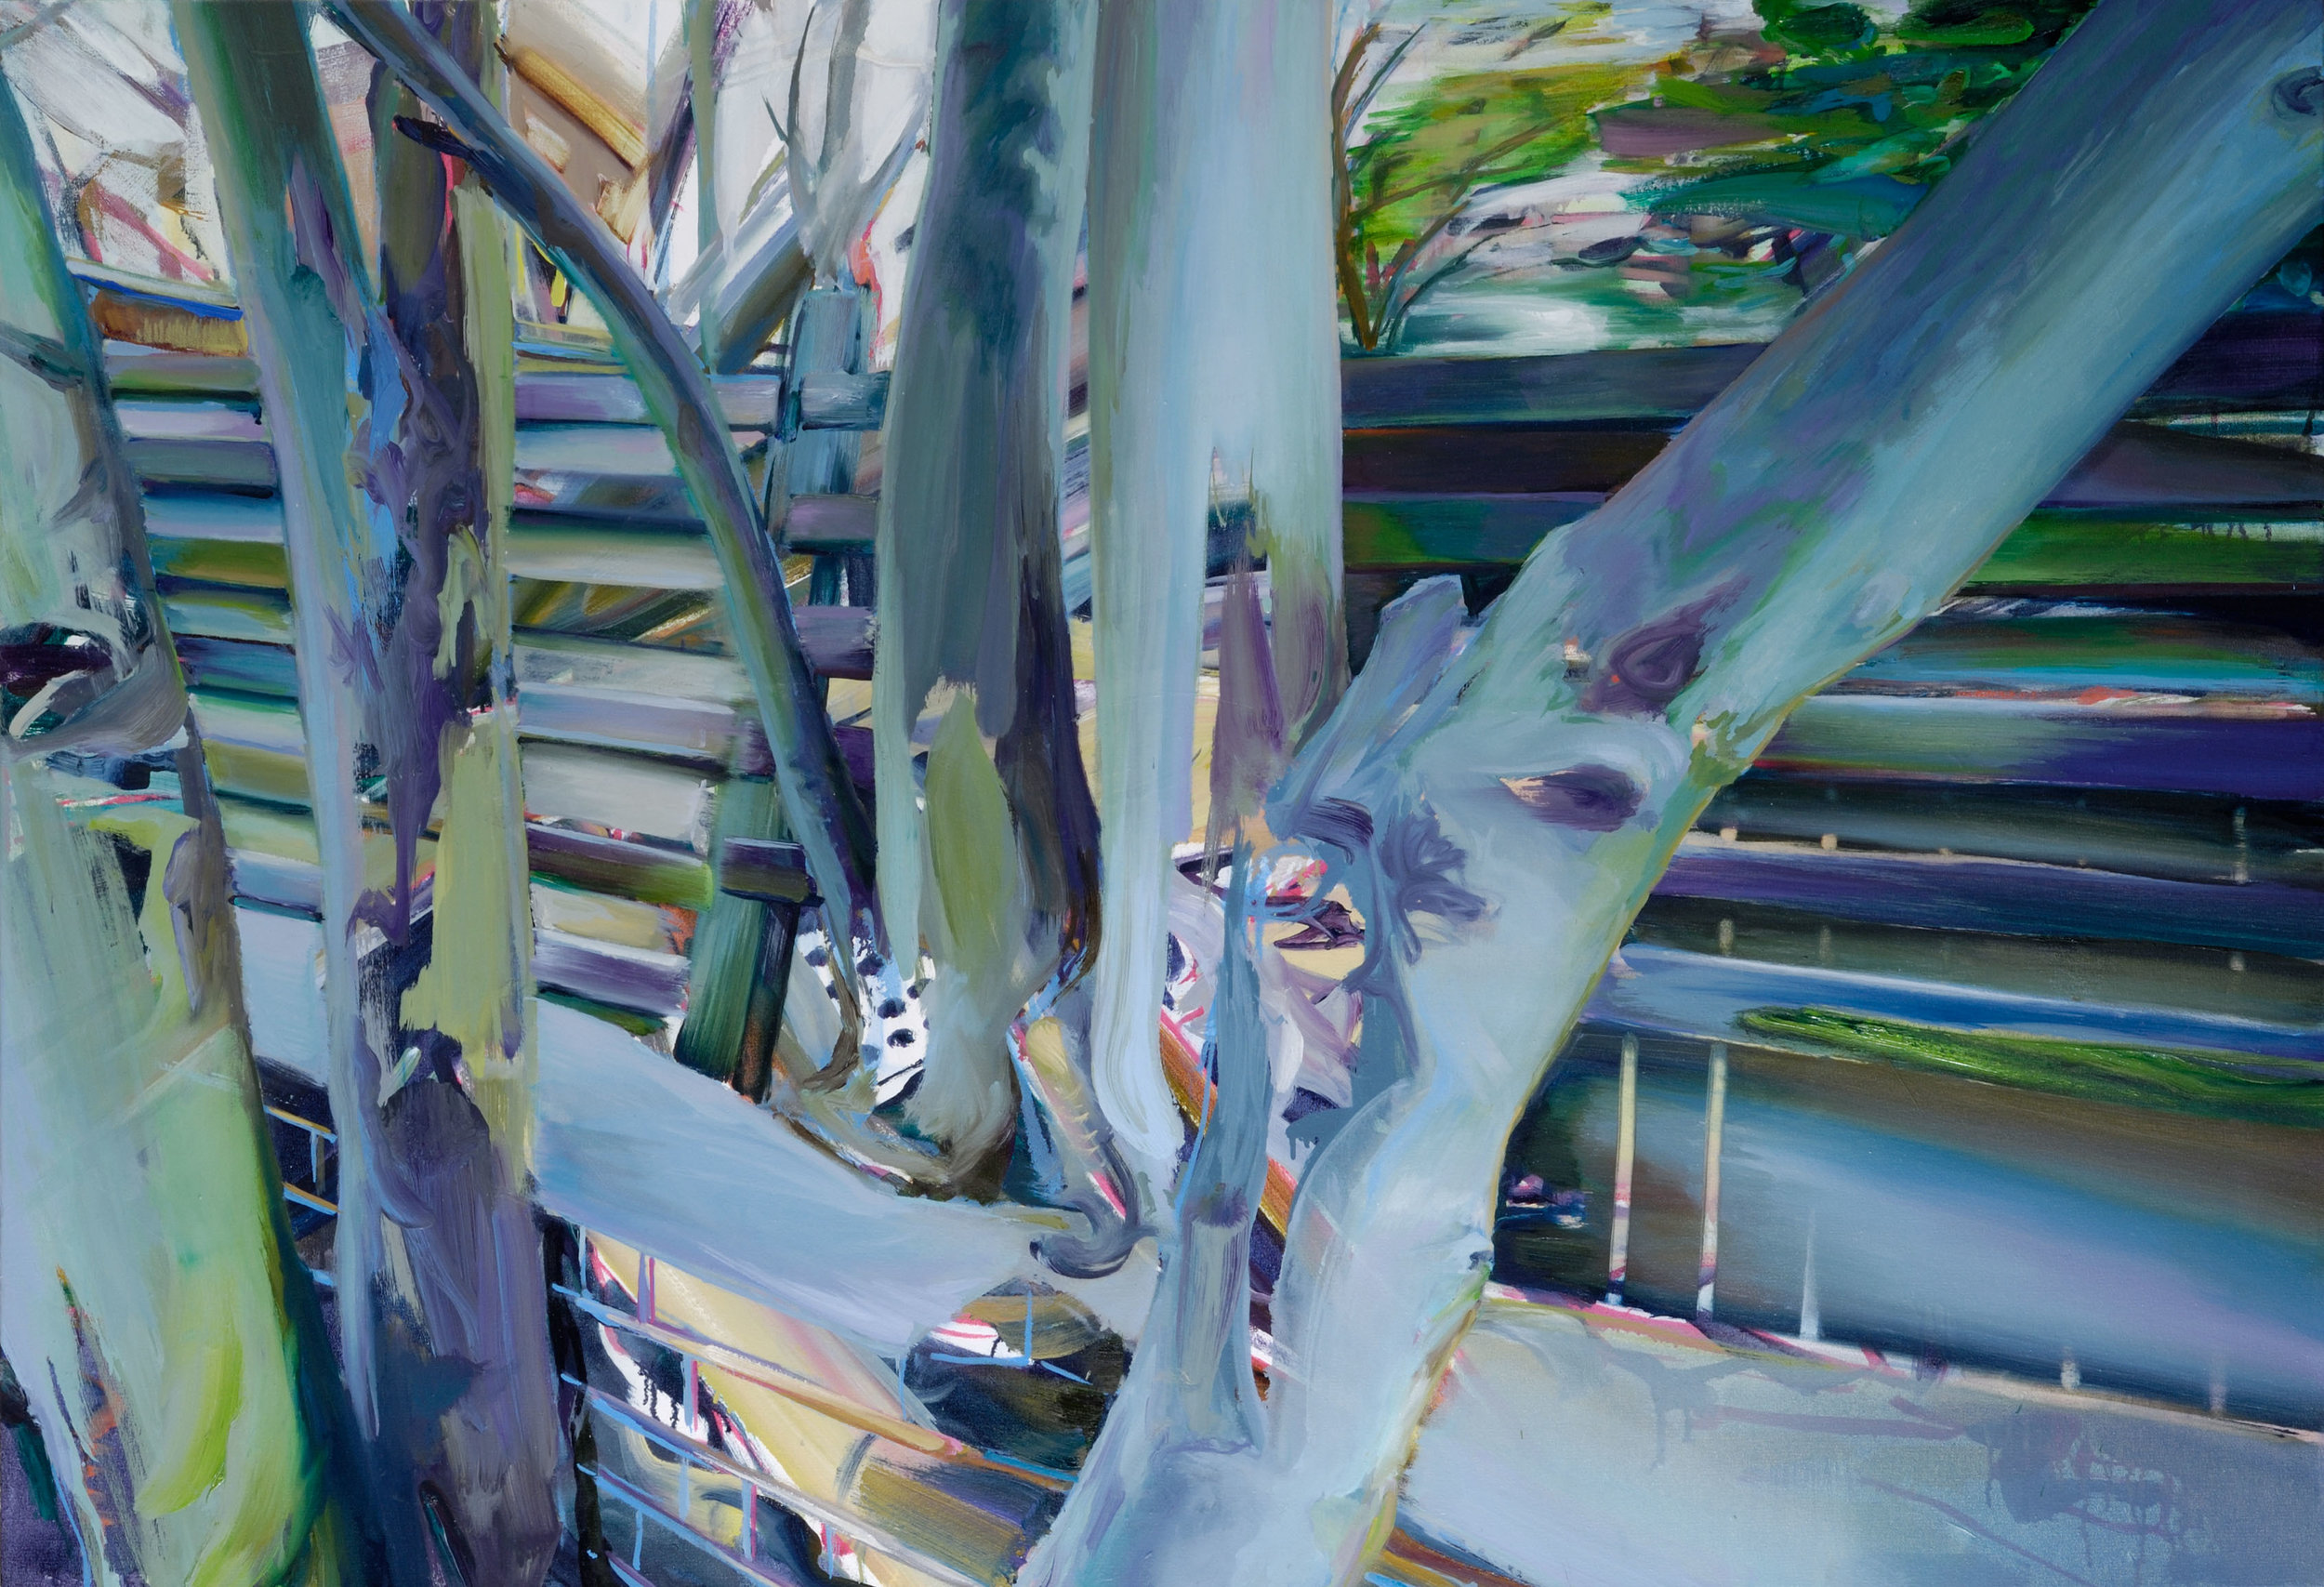 Fence(2) , 2008, oil on canvas, 89 x 130 cm. Private collection, France